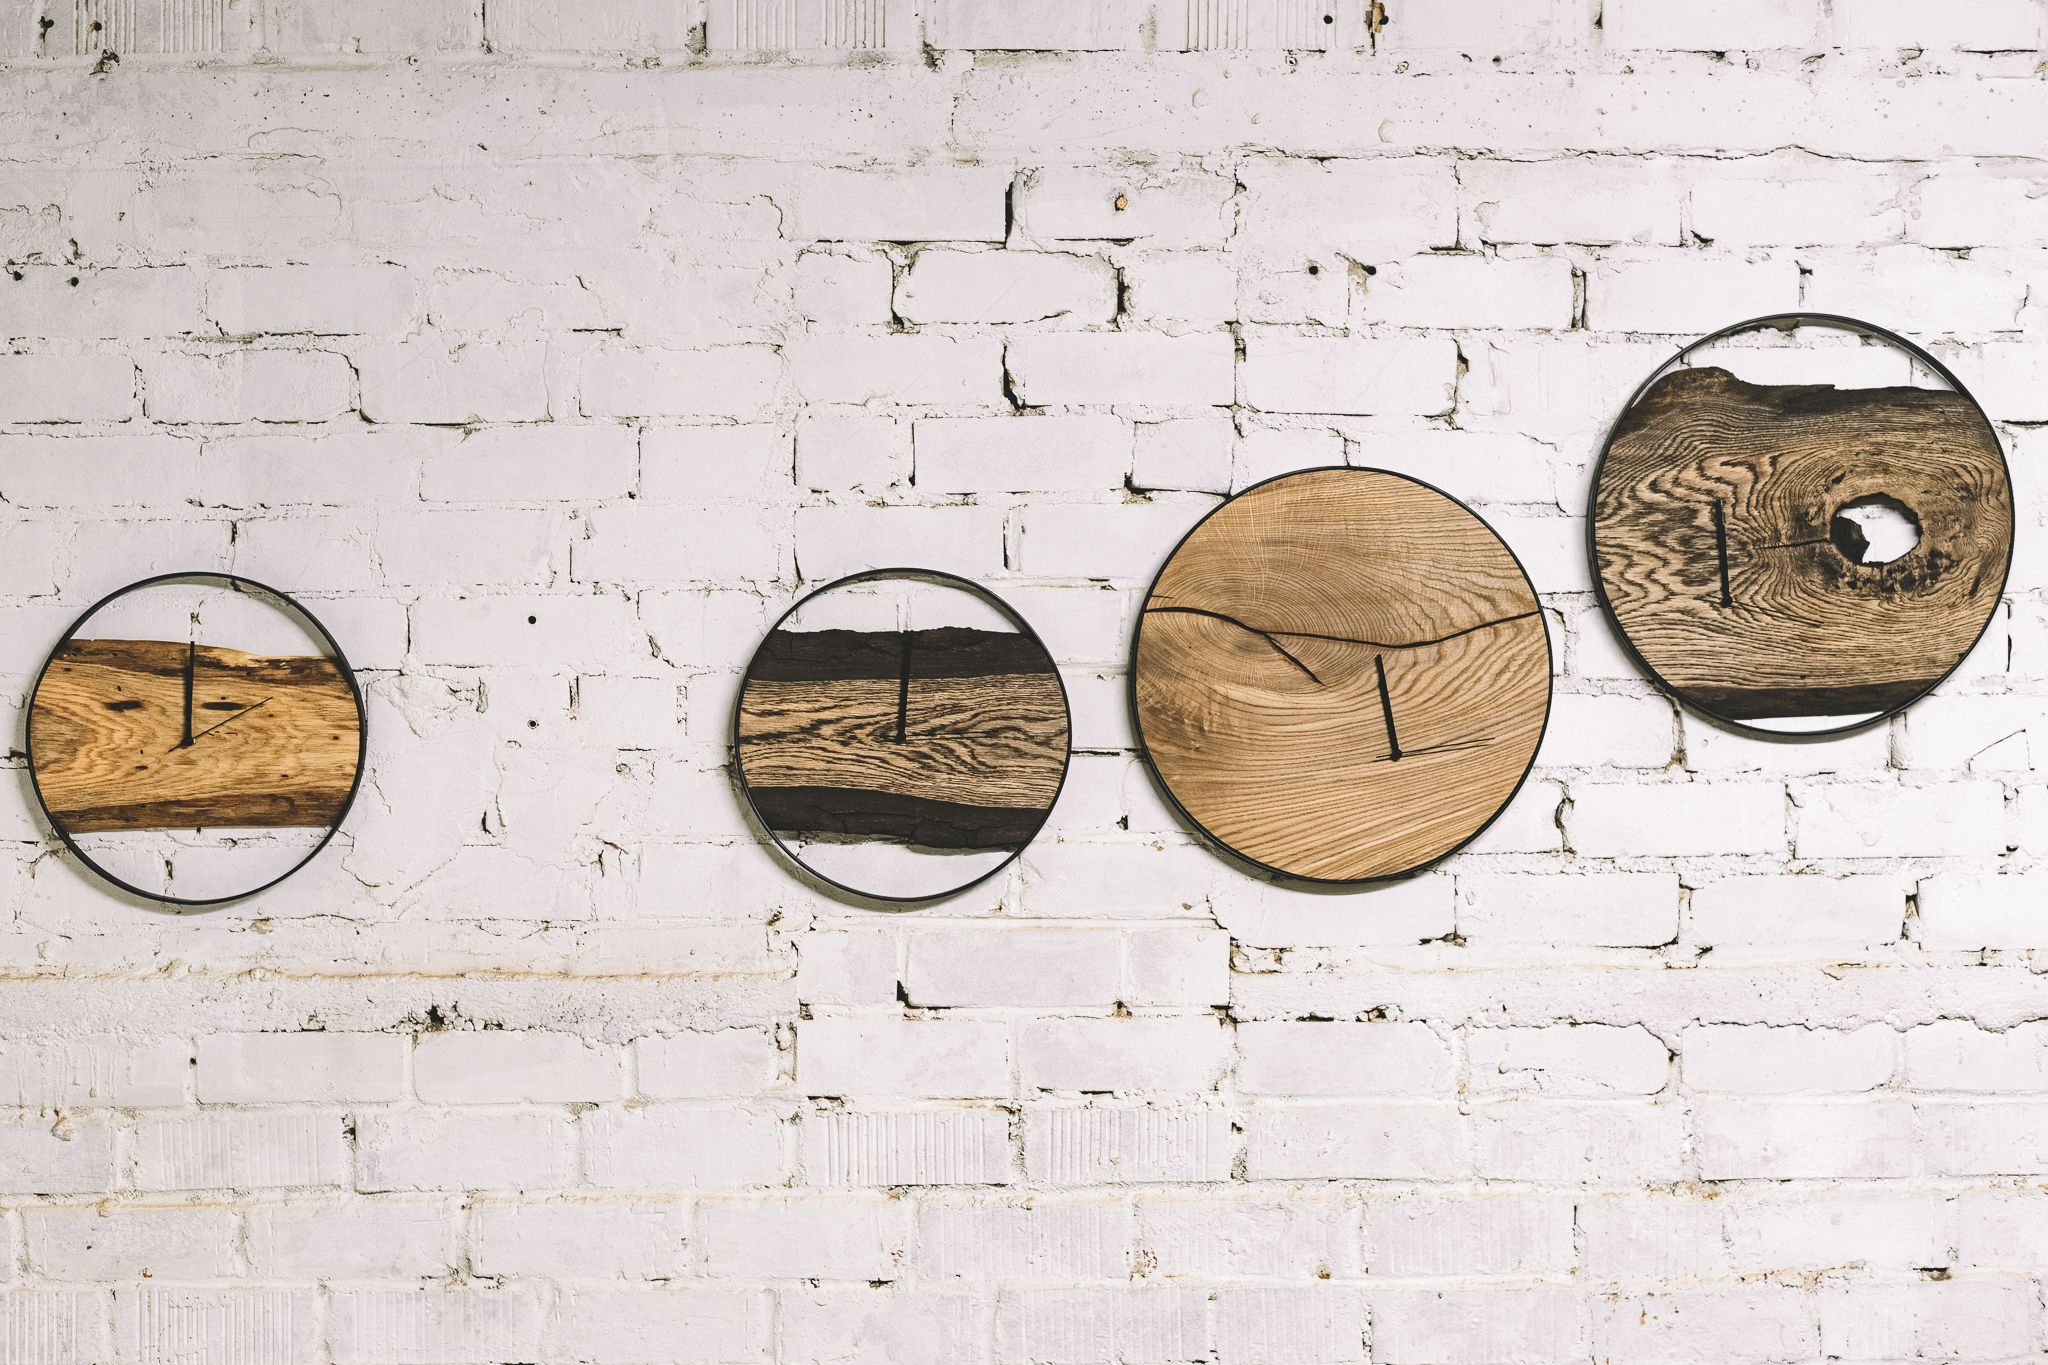 Large Wall Clock / Wooden Clock / Wall Clock / Home Decor within Large Modern Industrial Wall Decor (Image 17 of 30)